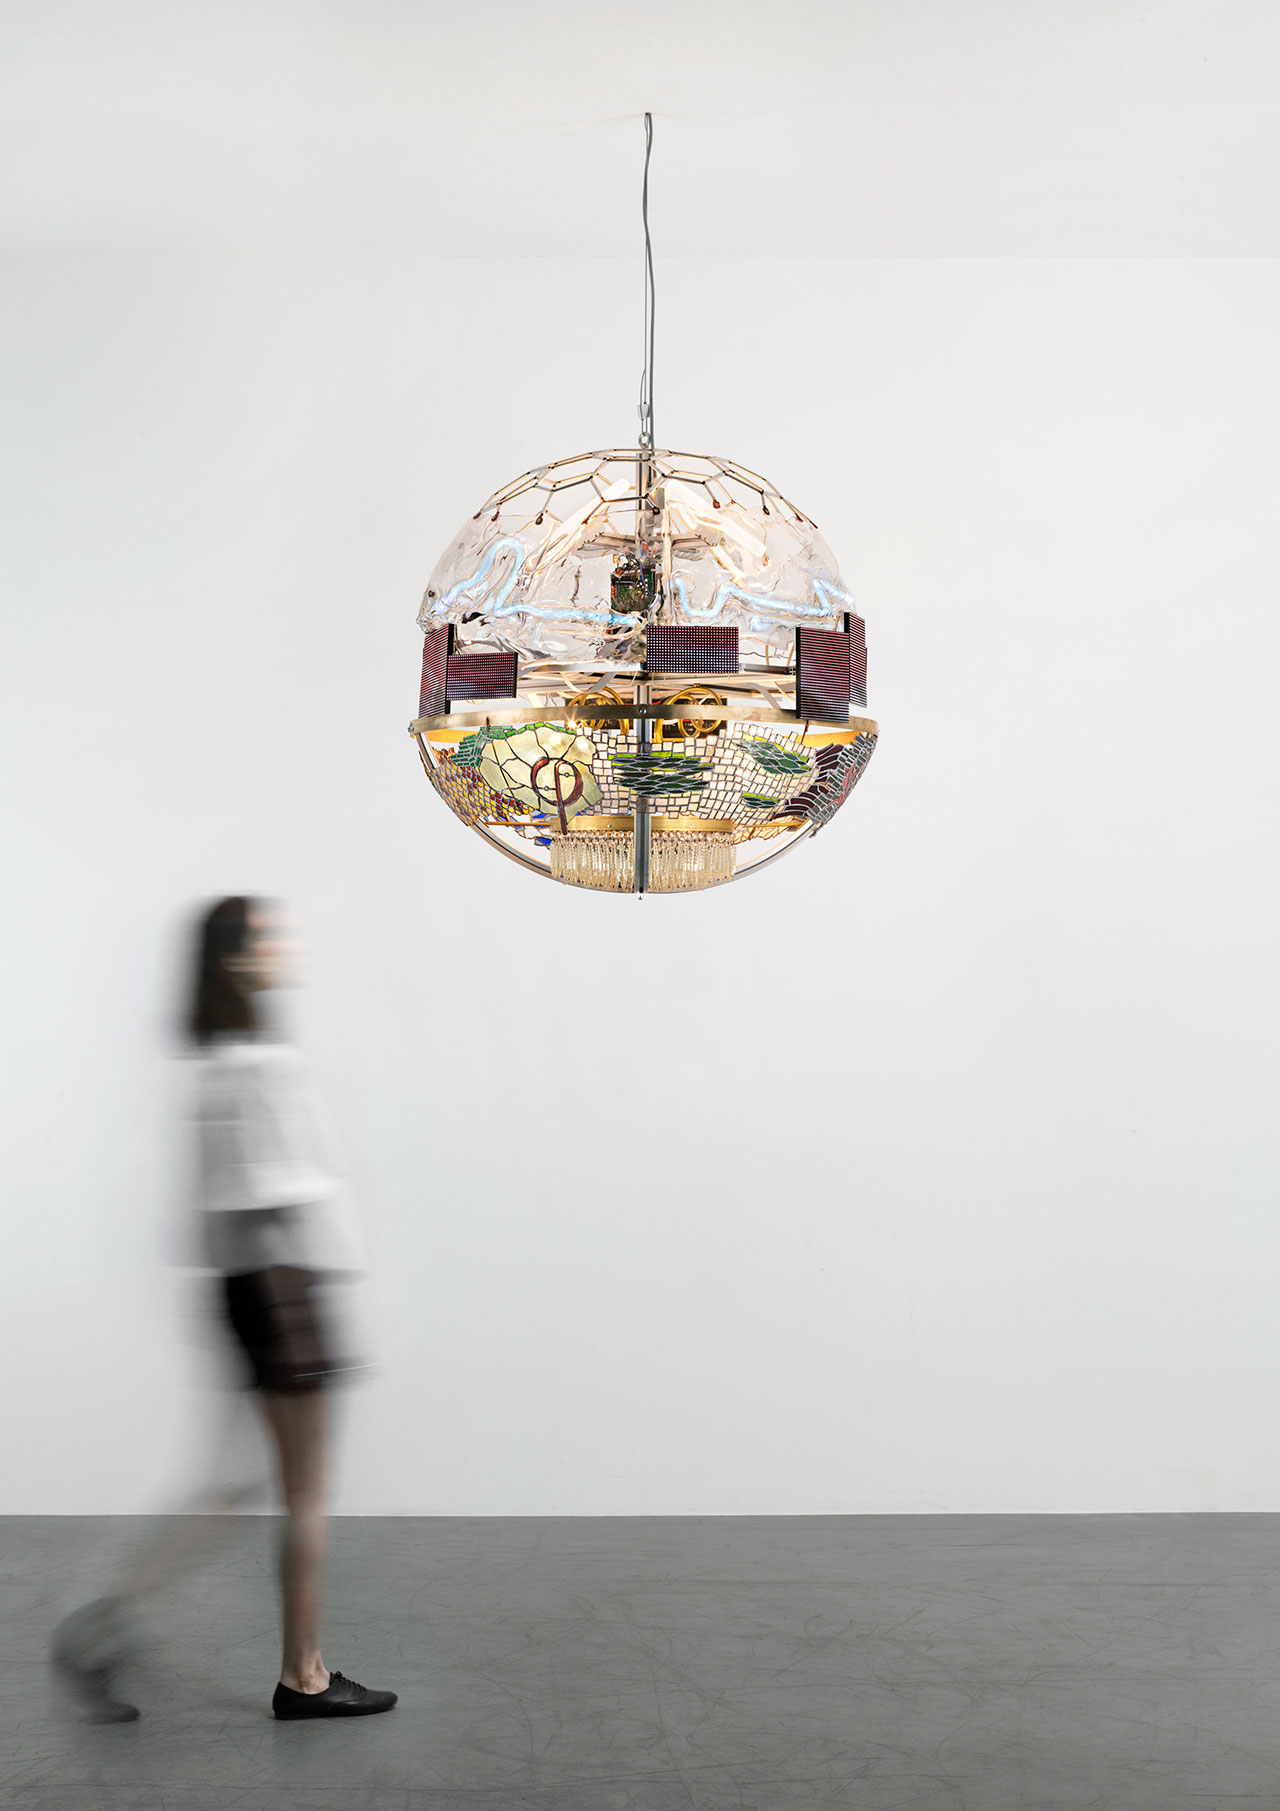 Kostas Lambridis, Elemental Chandelier. Photo courtesy Carpenters Workshop Gallery.